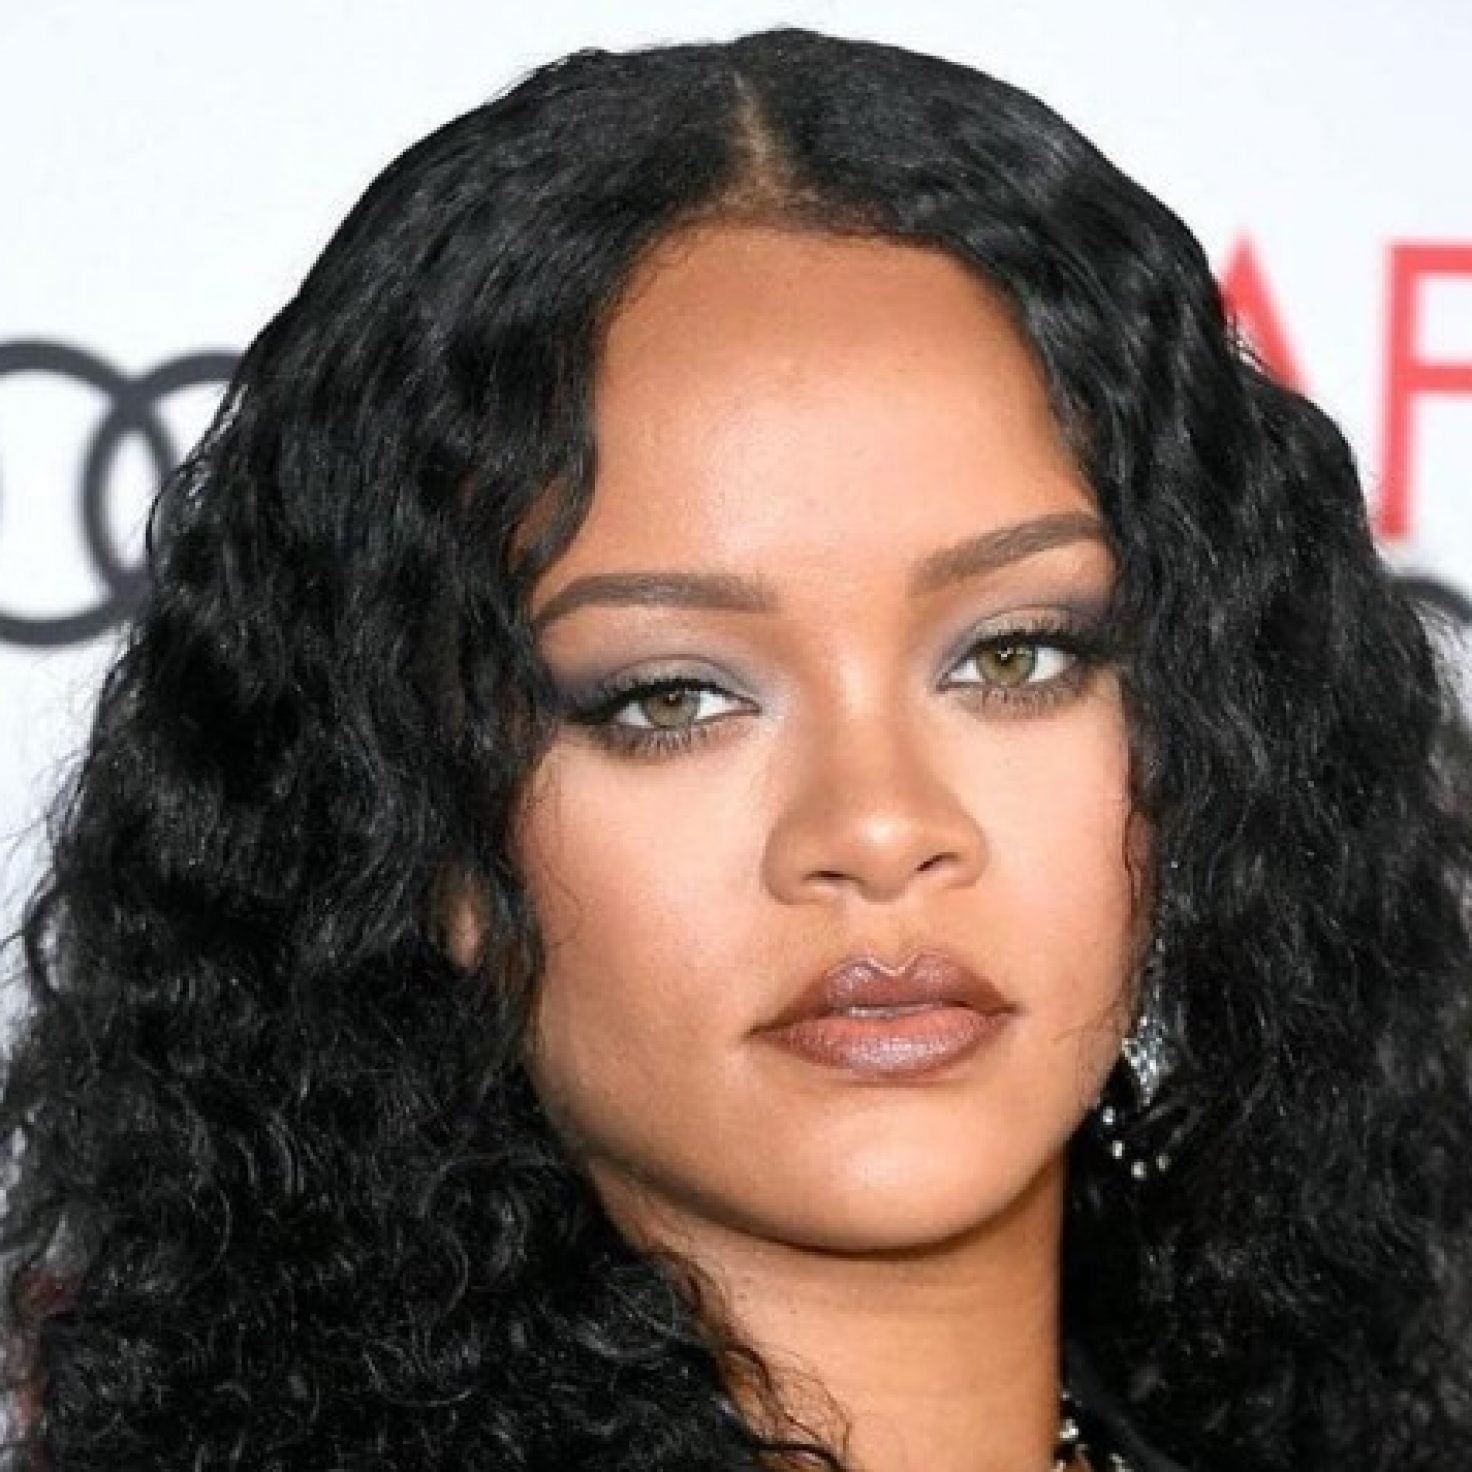 Must-See: Rihanna's Eyebrow Tutorial Is Beauty Gold